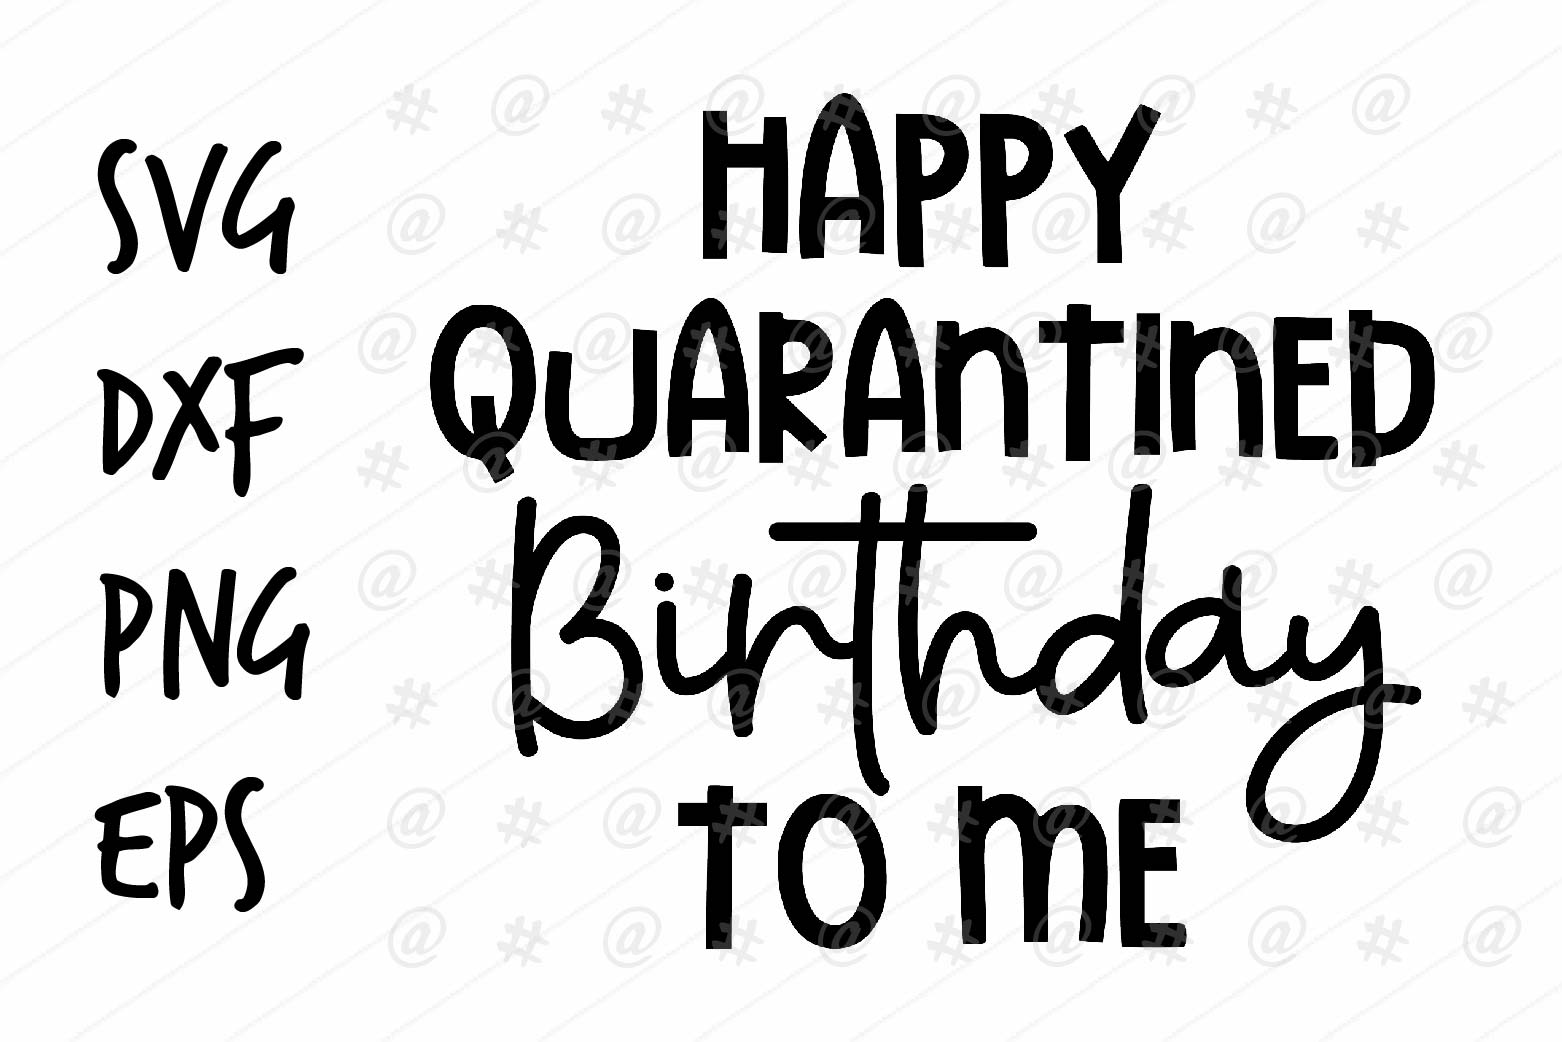 Download Free Happy Quarantine Birthday To Me Graphic By Spoonyprint for Cricut Explore, Silhouette and other cutting machines.